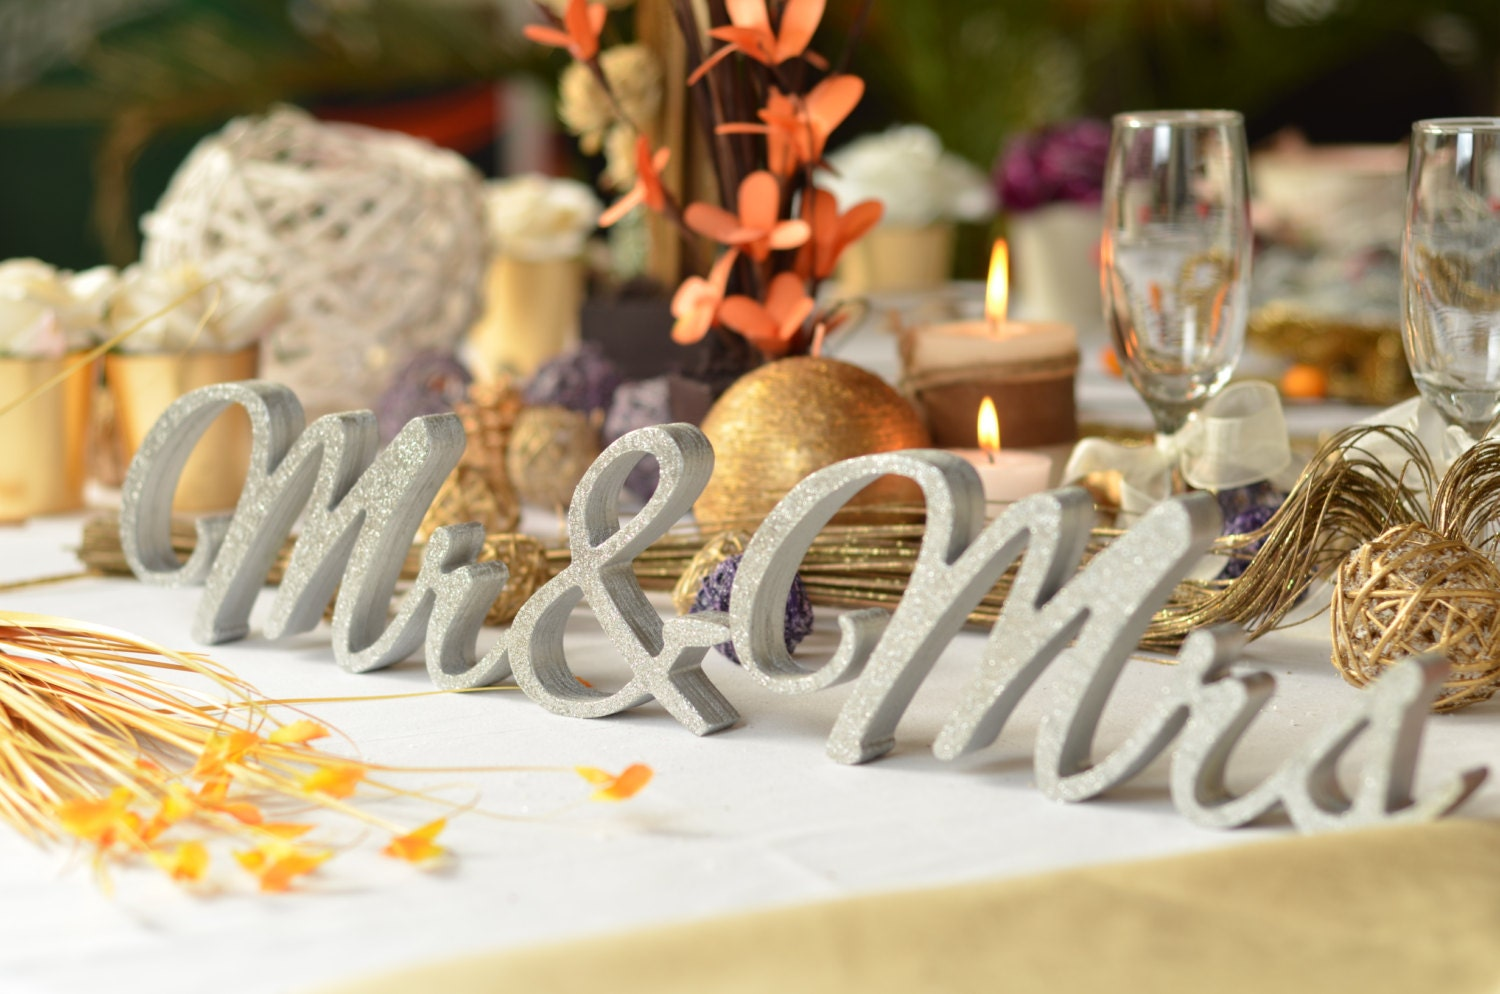 Glitter Mr. & Mrs. Letters Wedding Table Decoration By SunFla